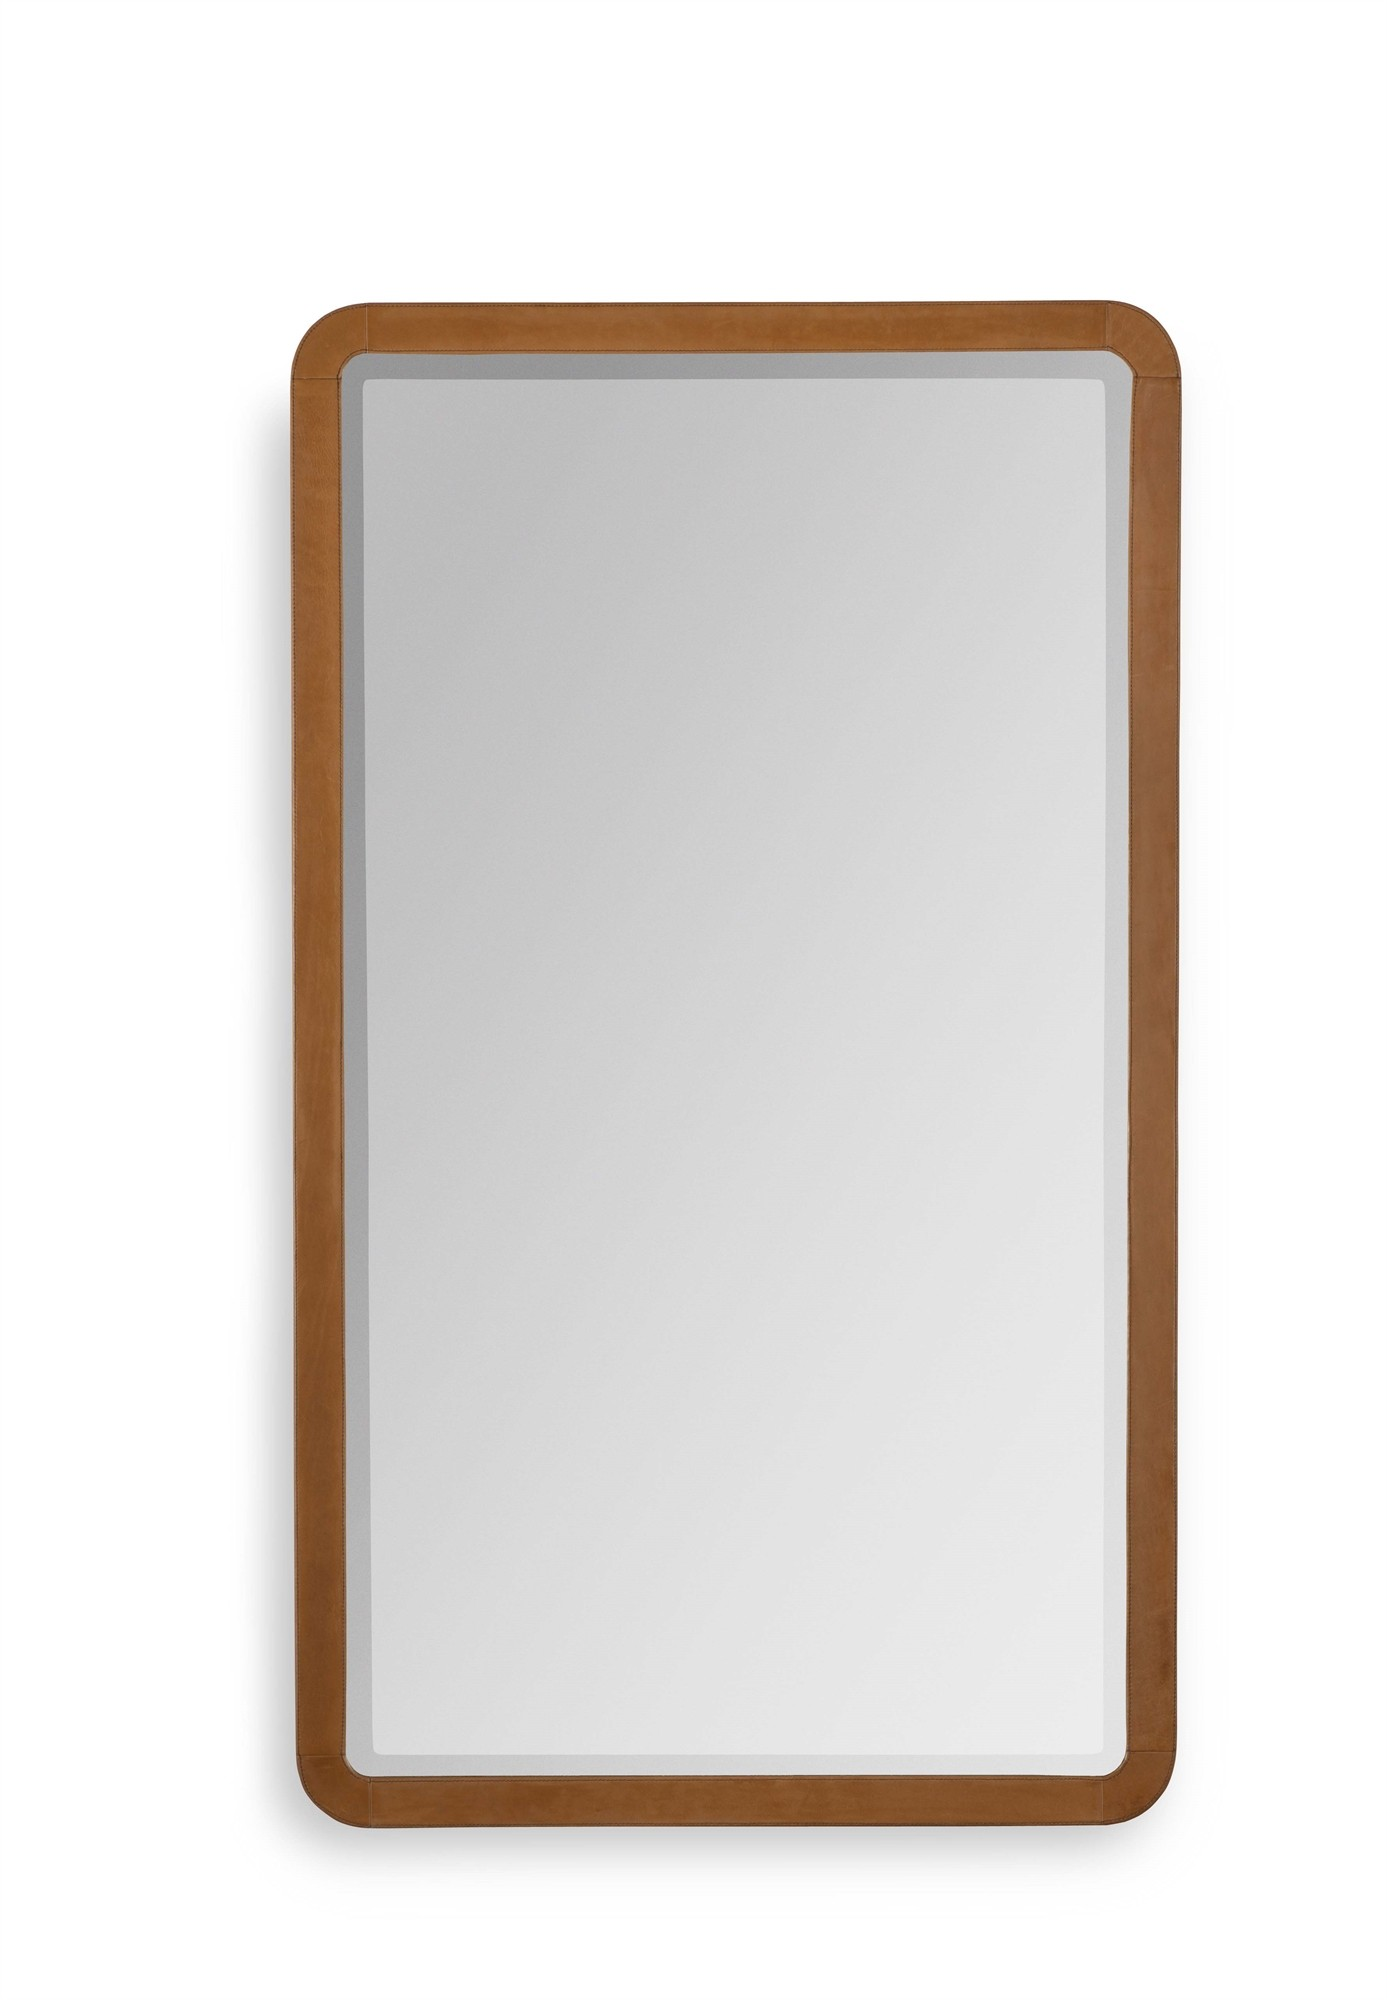 Maison '47 Leather Wrap Mirror